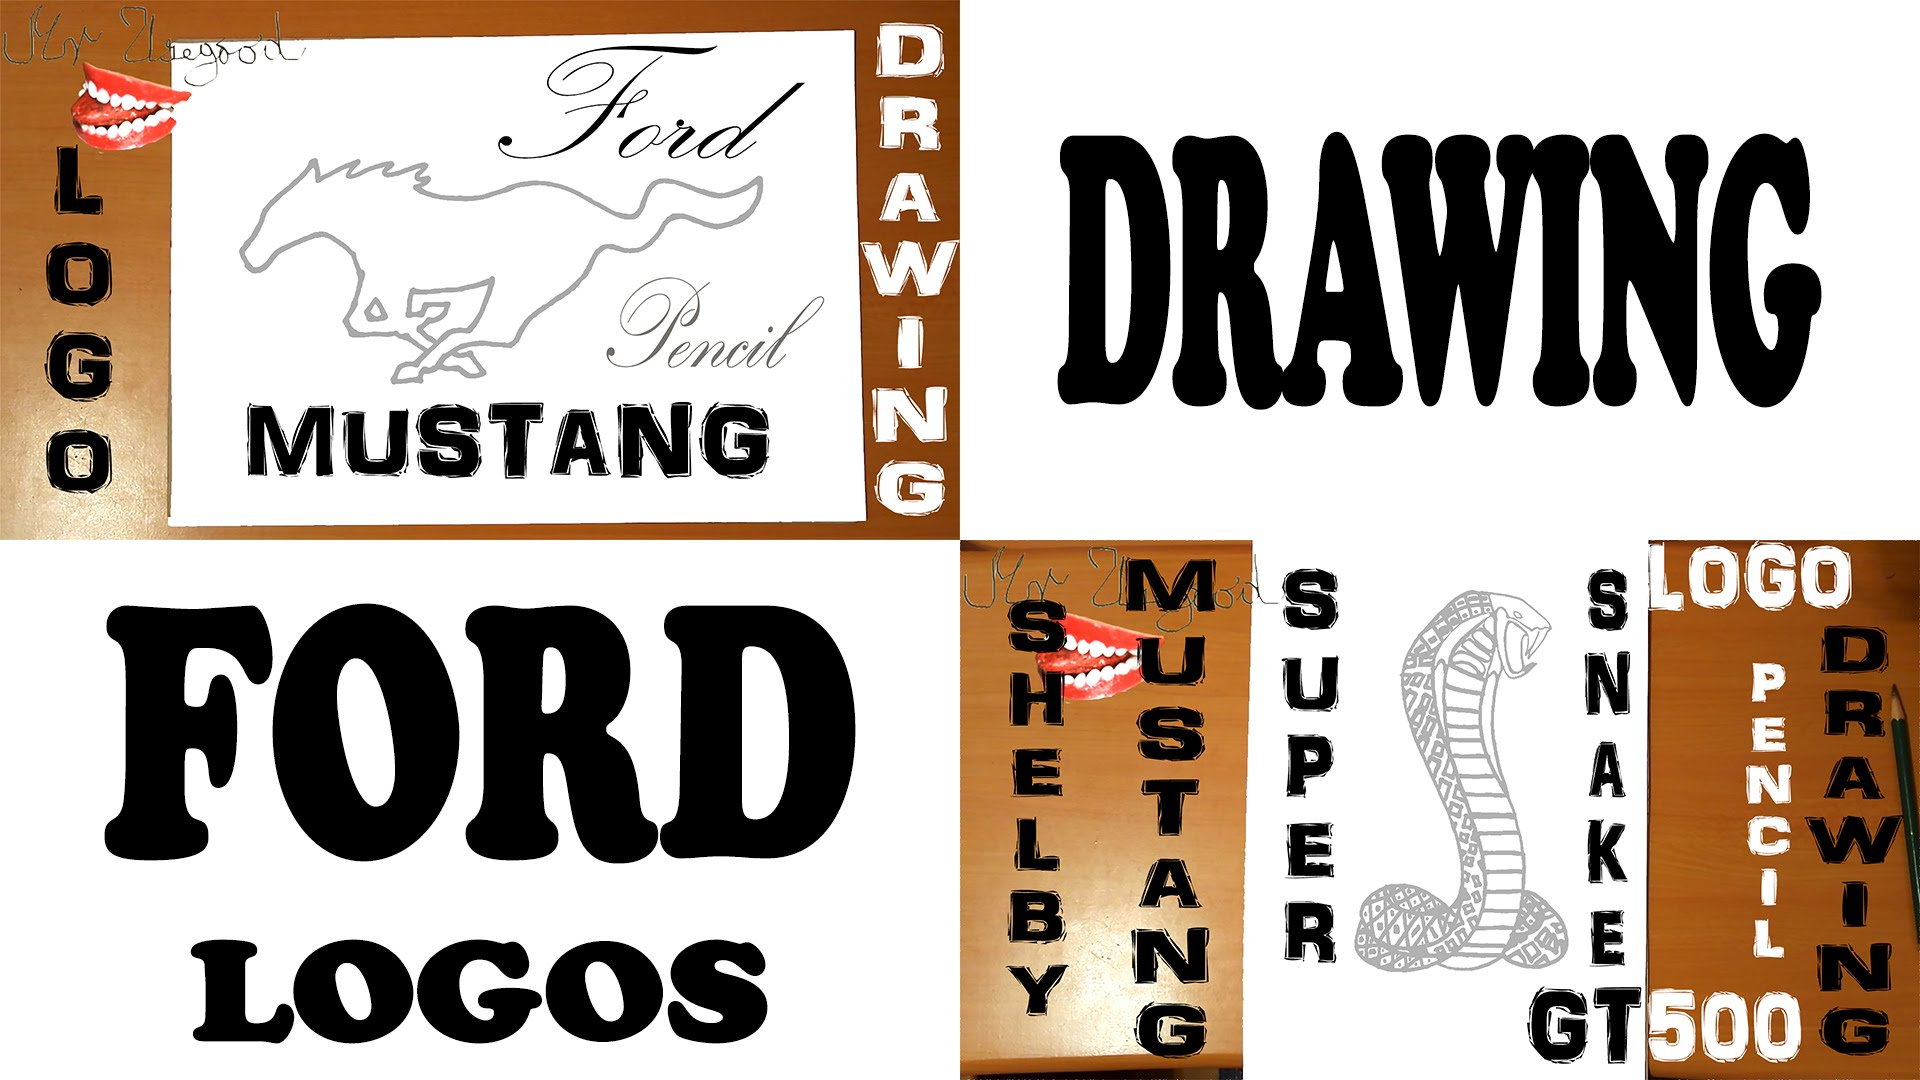 1920x1080 How To Draw Ford Logo Step By Step Easy Ford Mustang Logo